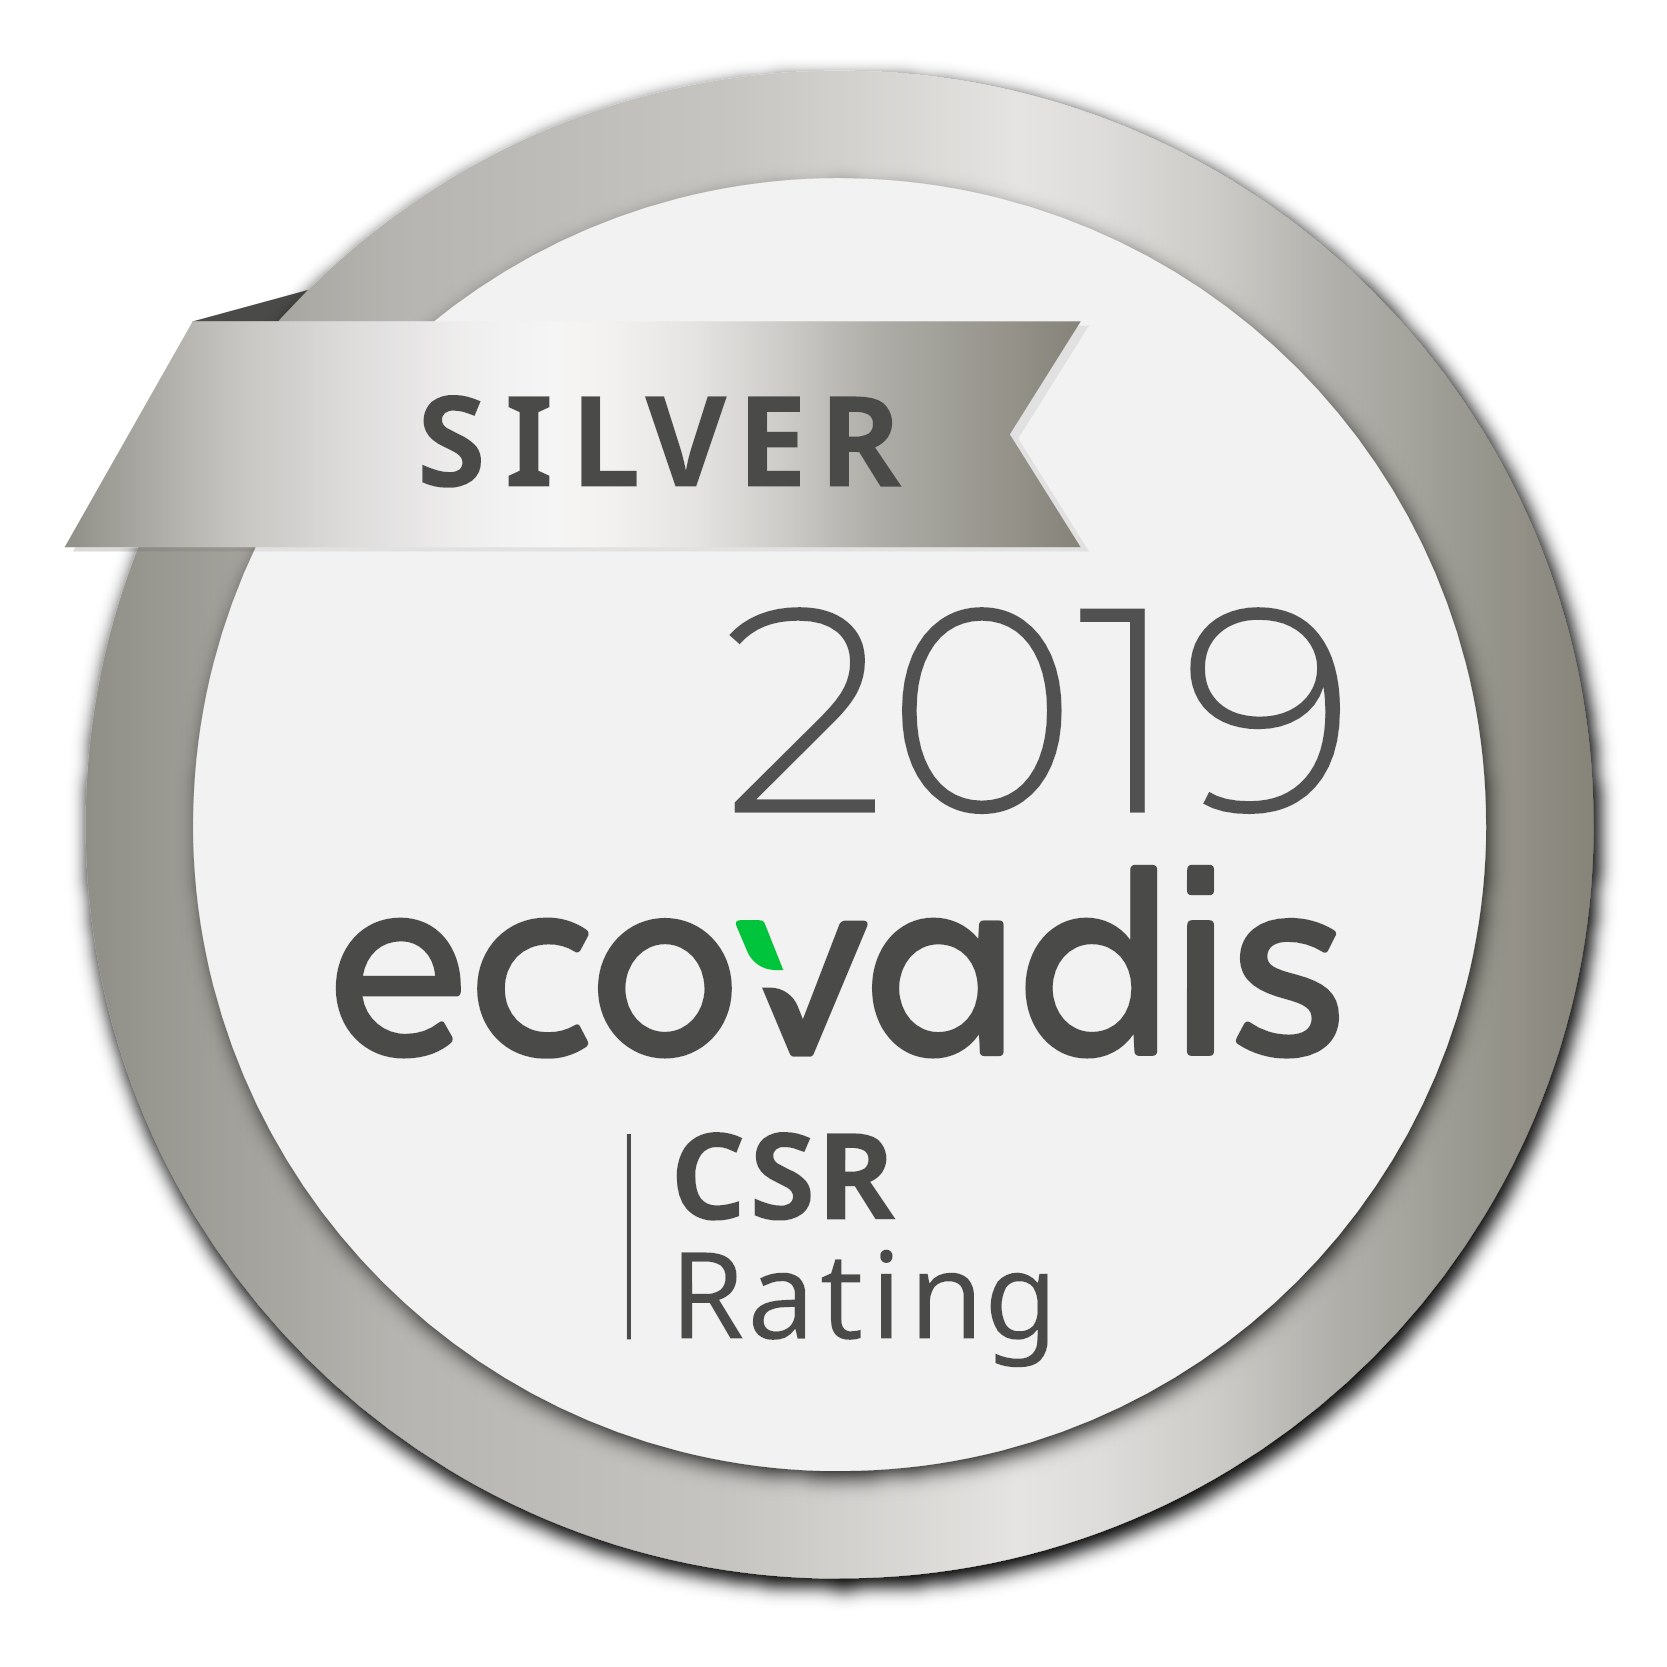 H.B. Fuller 2019 ecovadis Silver Rating